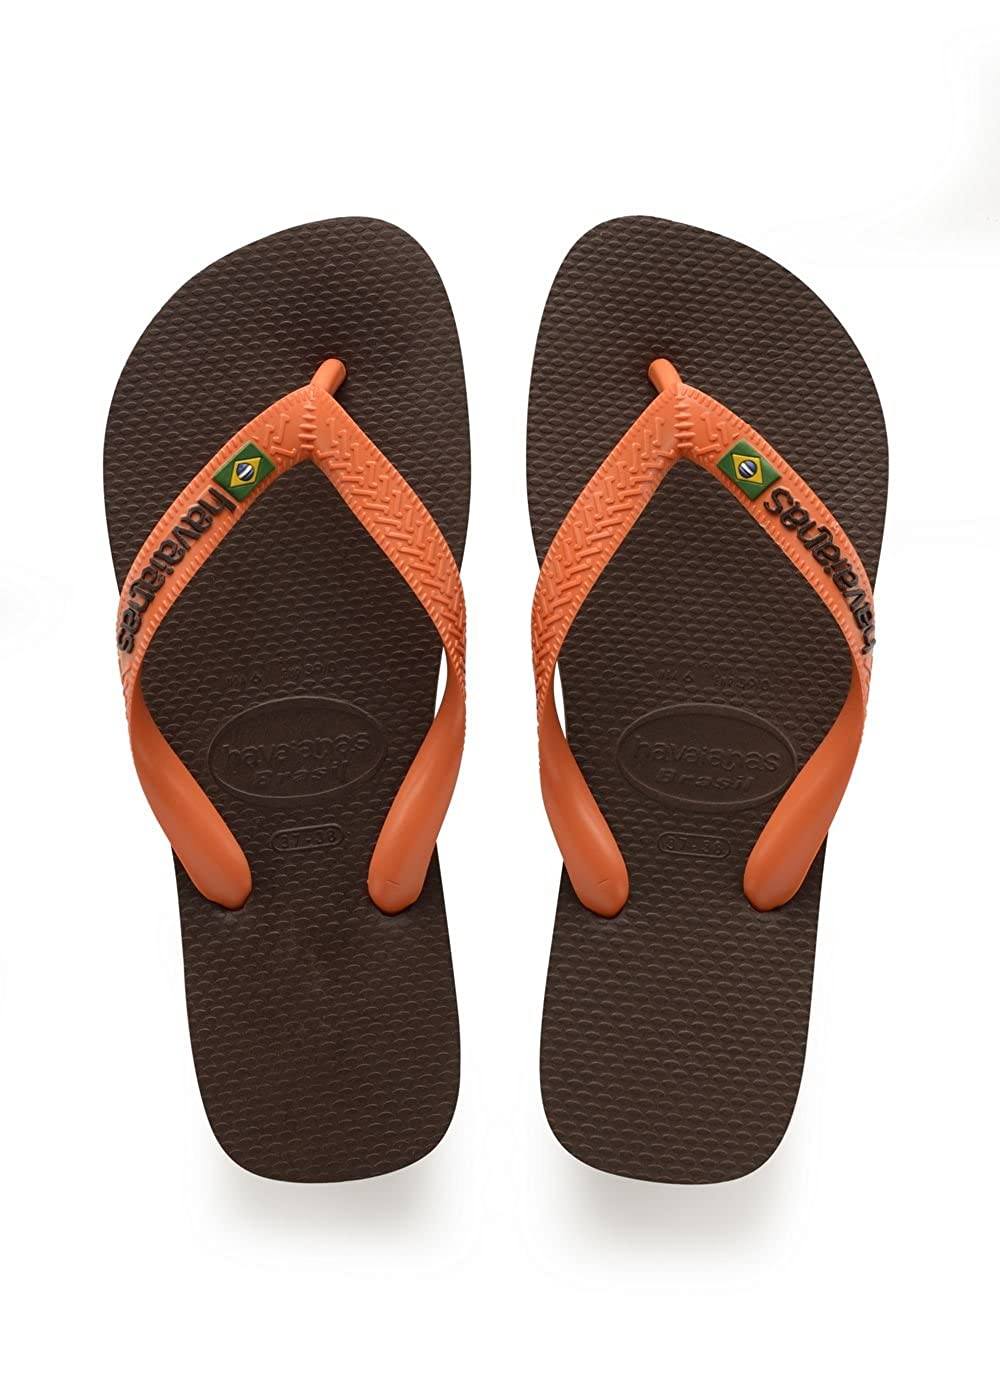 Havaianas Brasil Logo, Chanclas Unisex Adulto, Marrón (Dark Brown/Orange), 37/38 EU